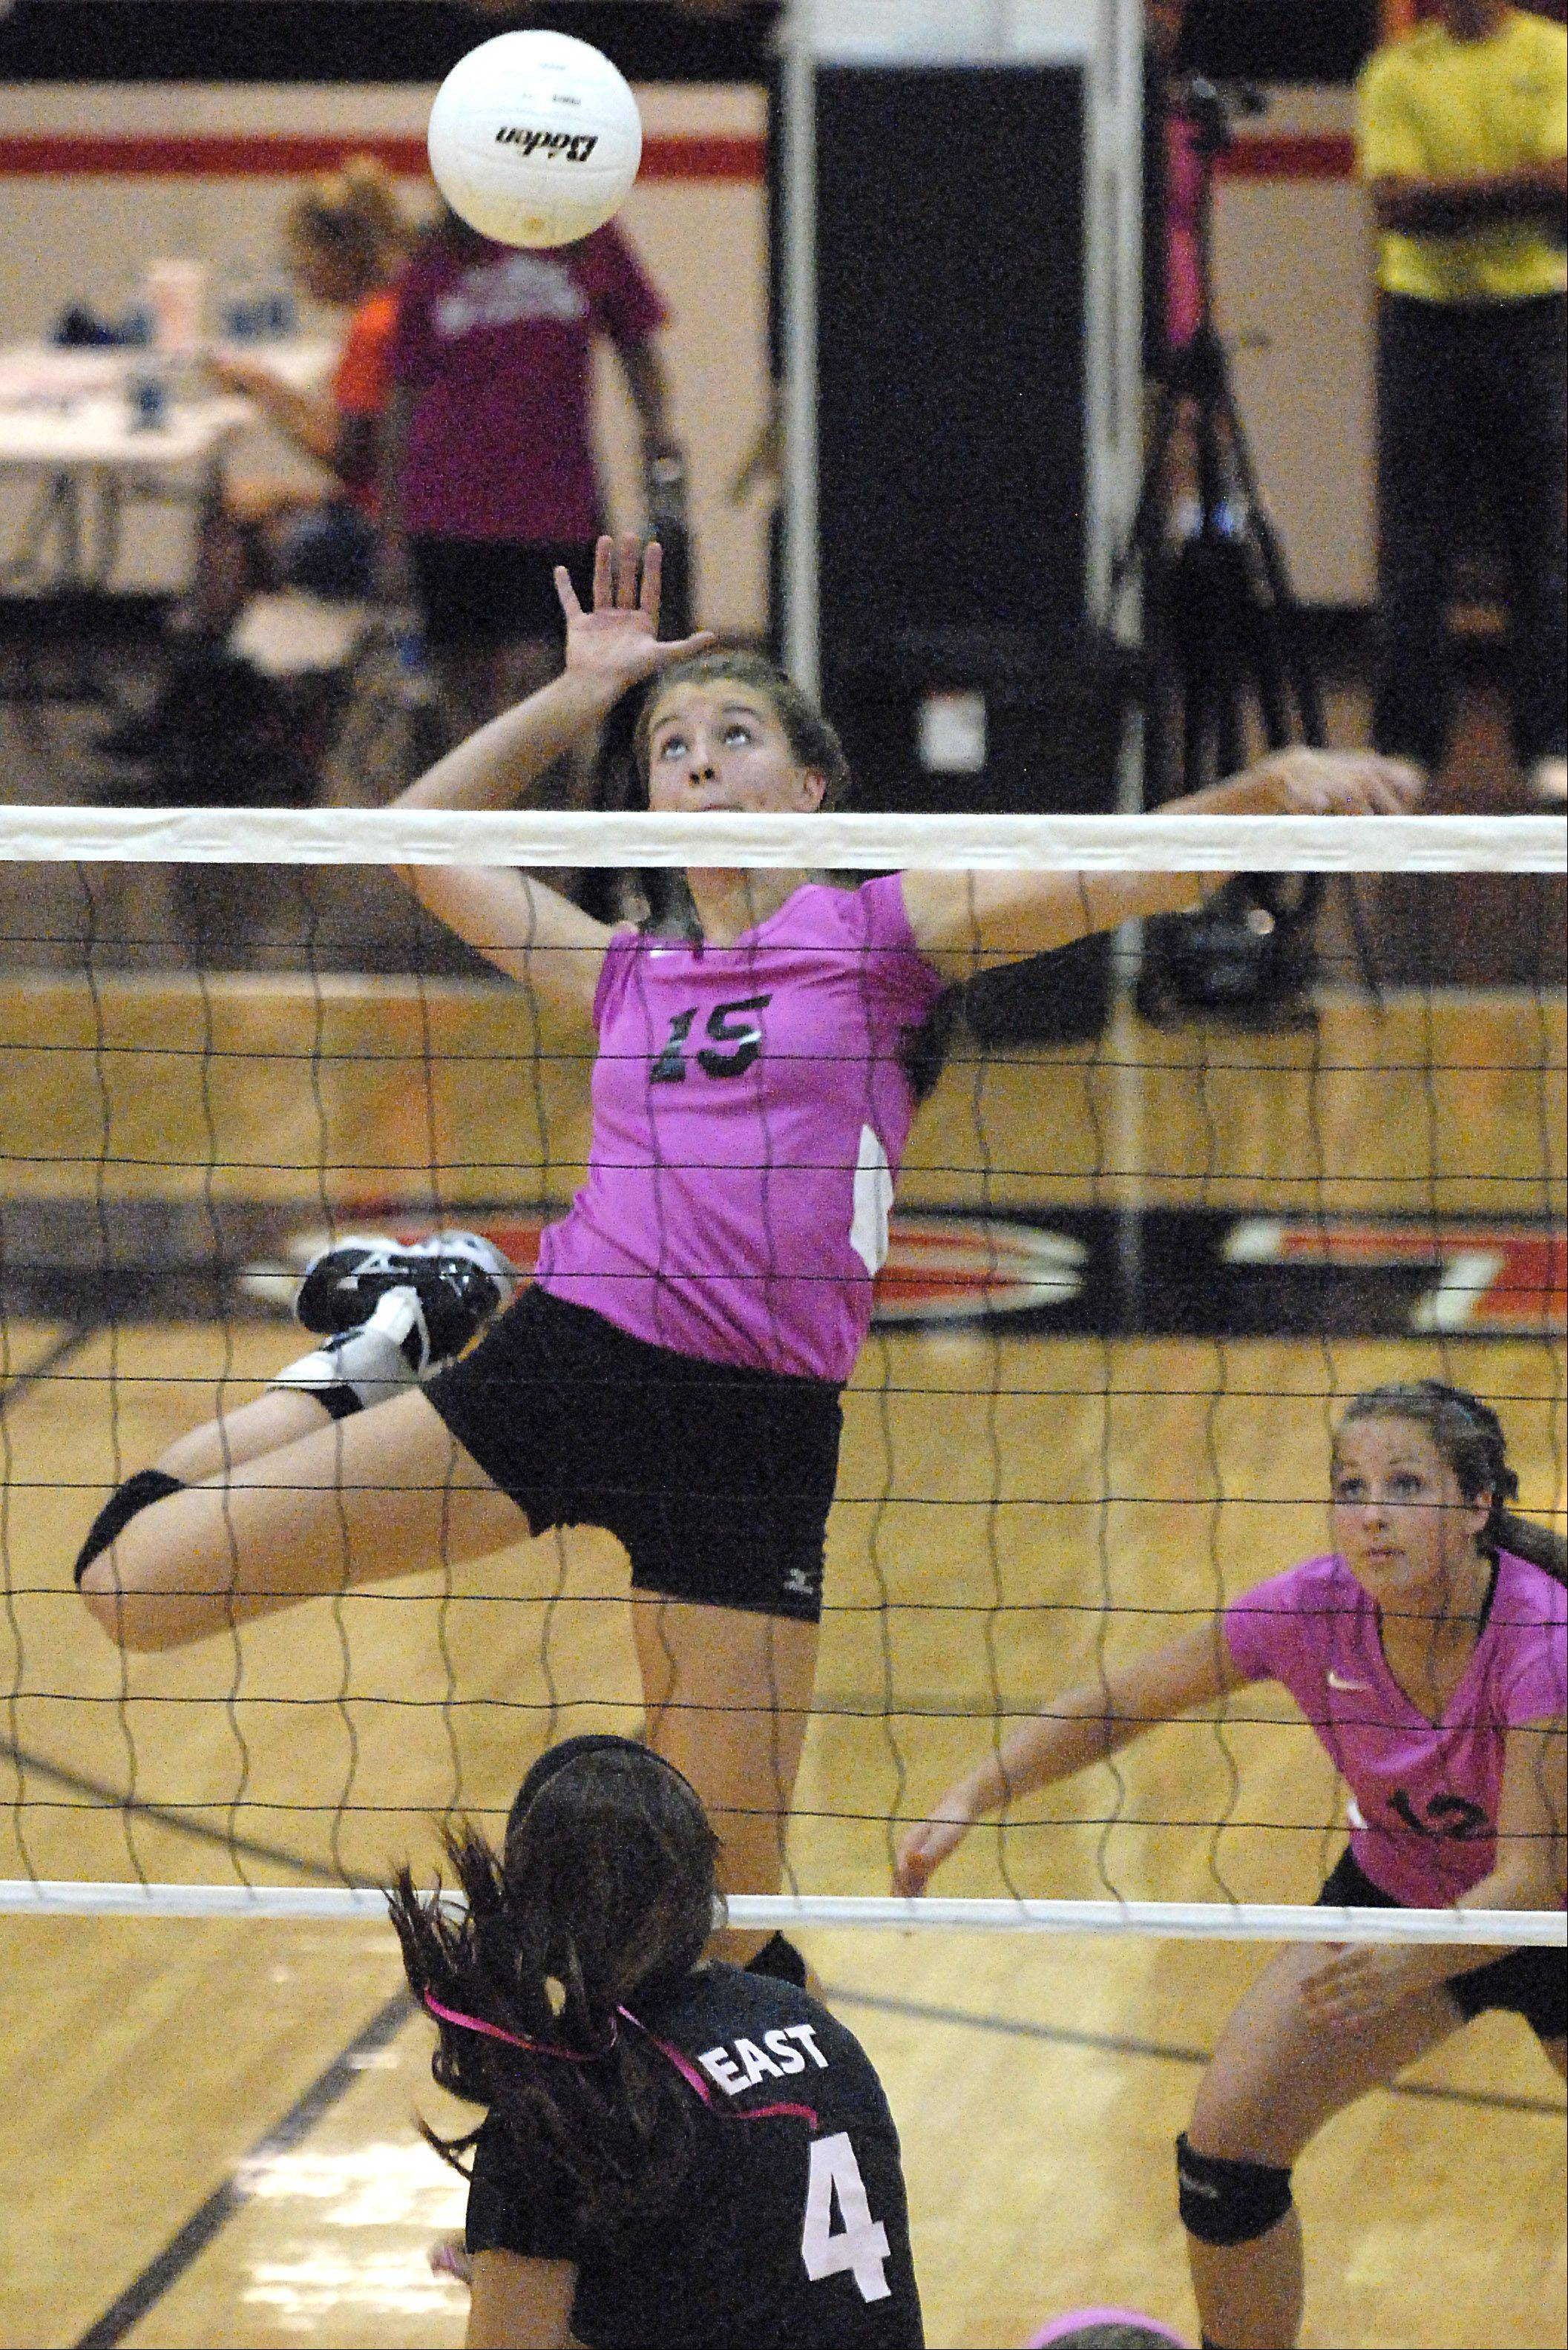 St. Charles North's Alex Stone spikes the ball over the net and head of St. Charles East's Caitlyn Ballard.